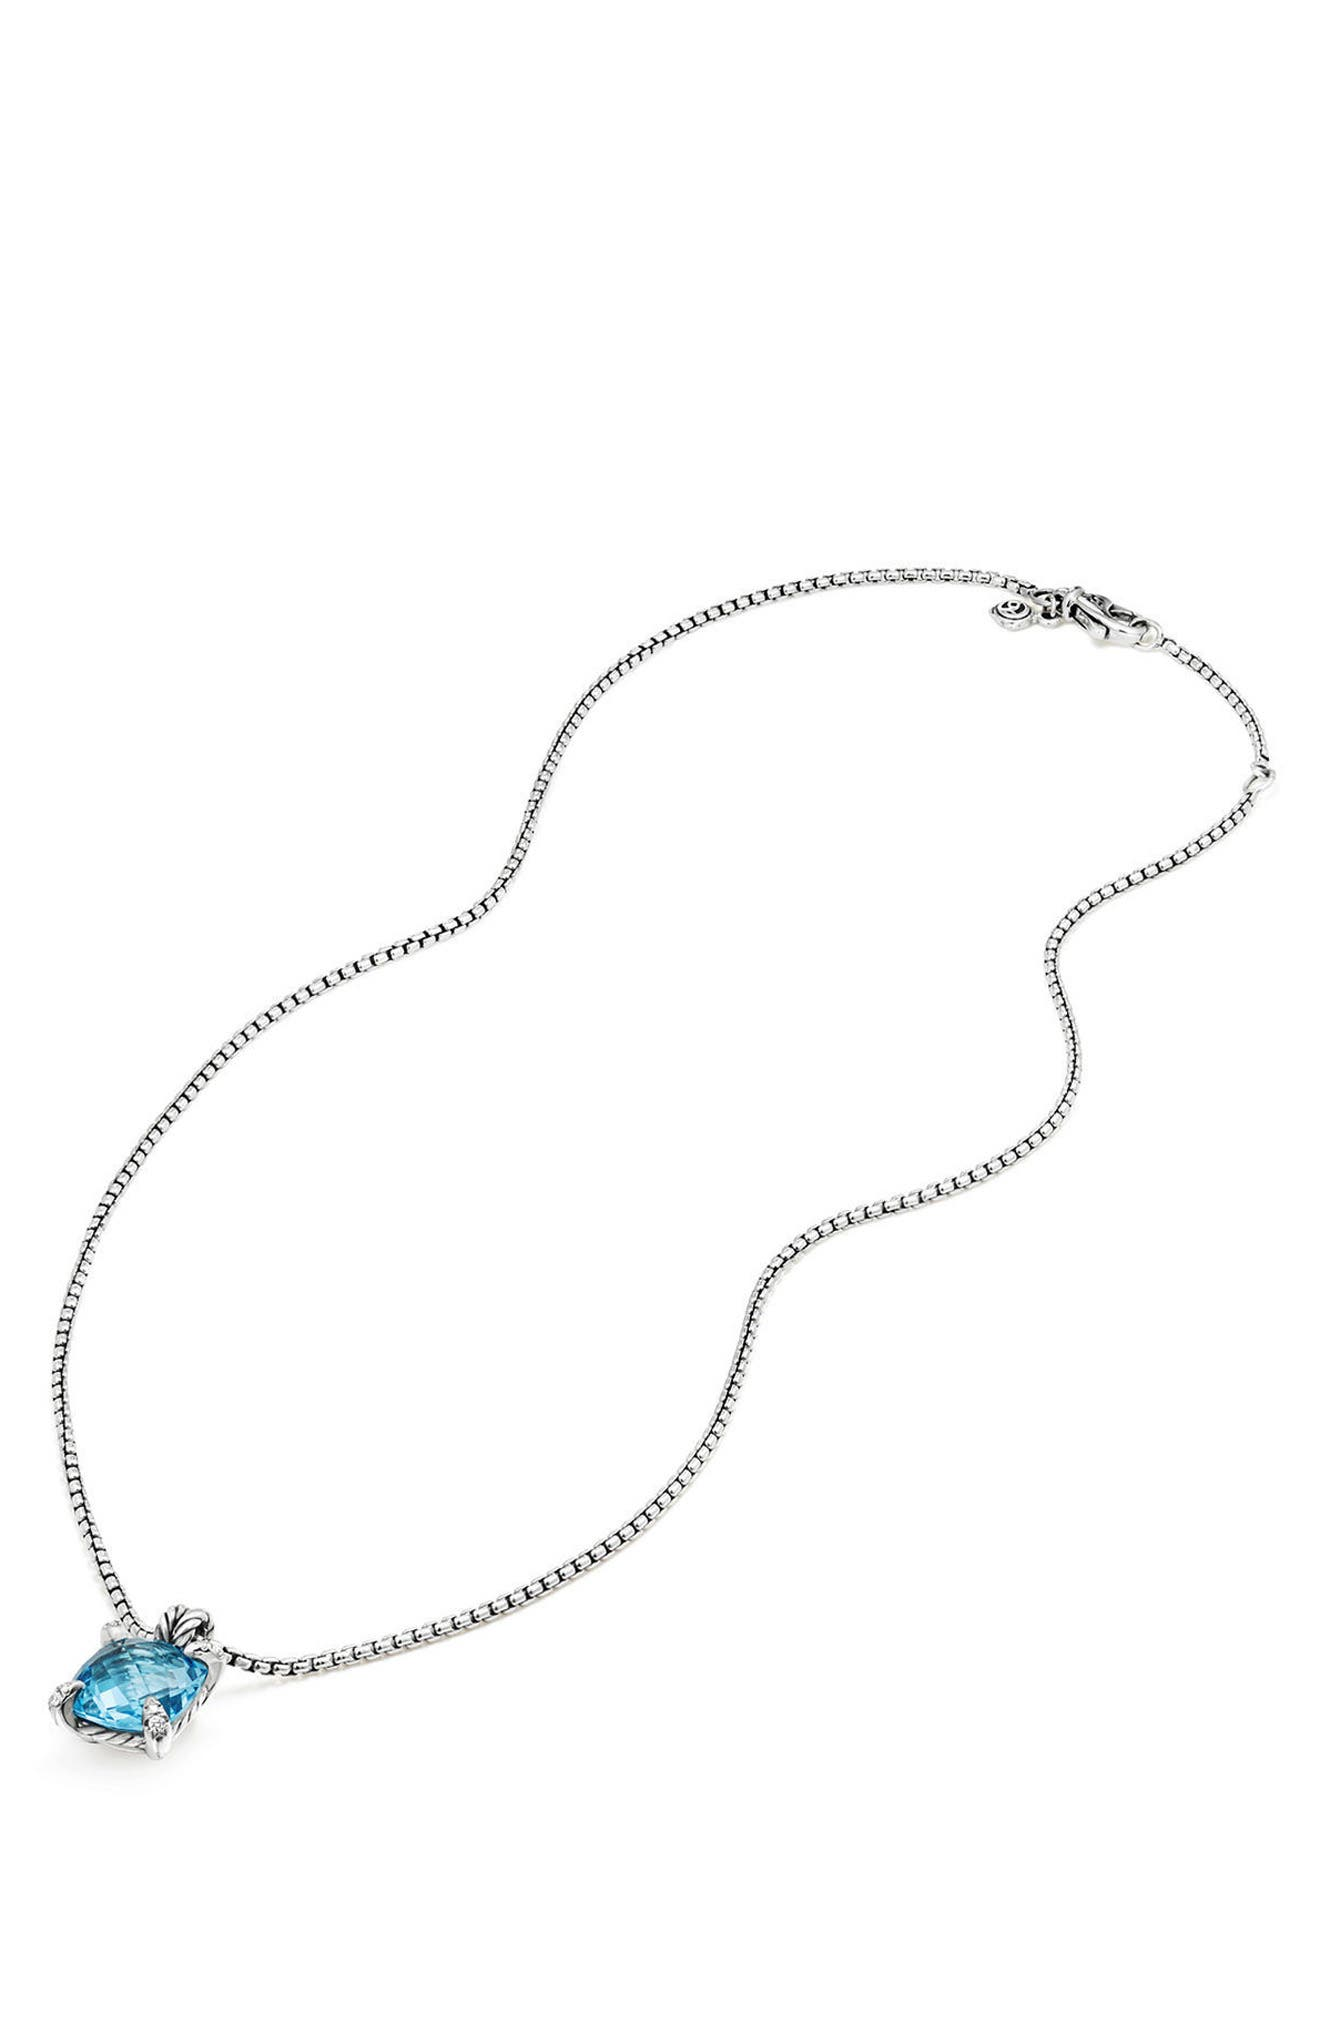 David Yurman Châtelaine Pendant Necklace with Semiprecious Stone & Diamonds